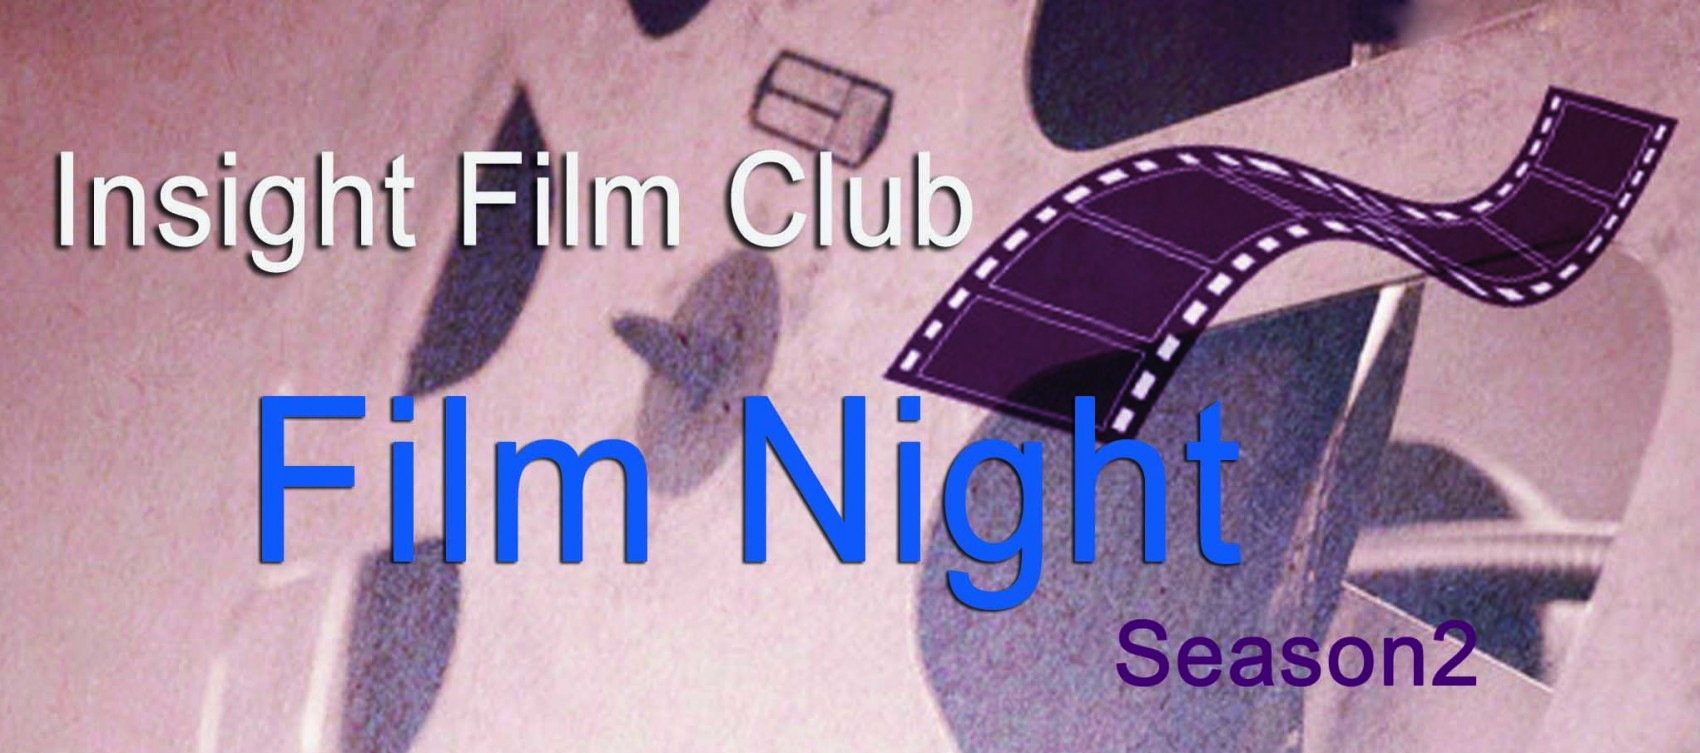 1st Insight Film club poster